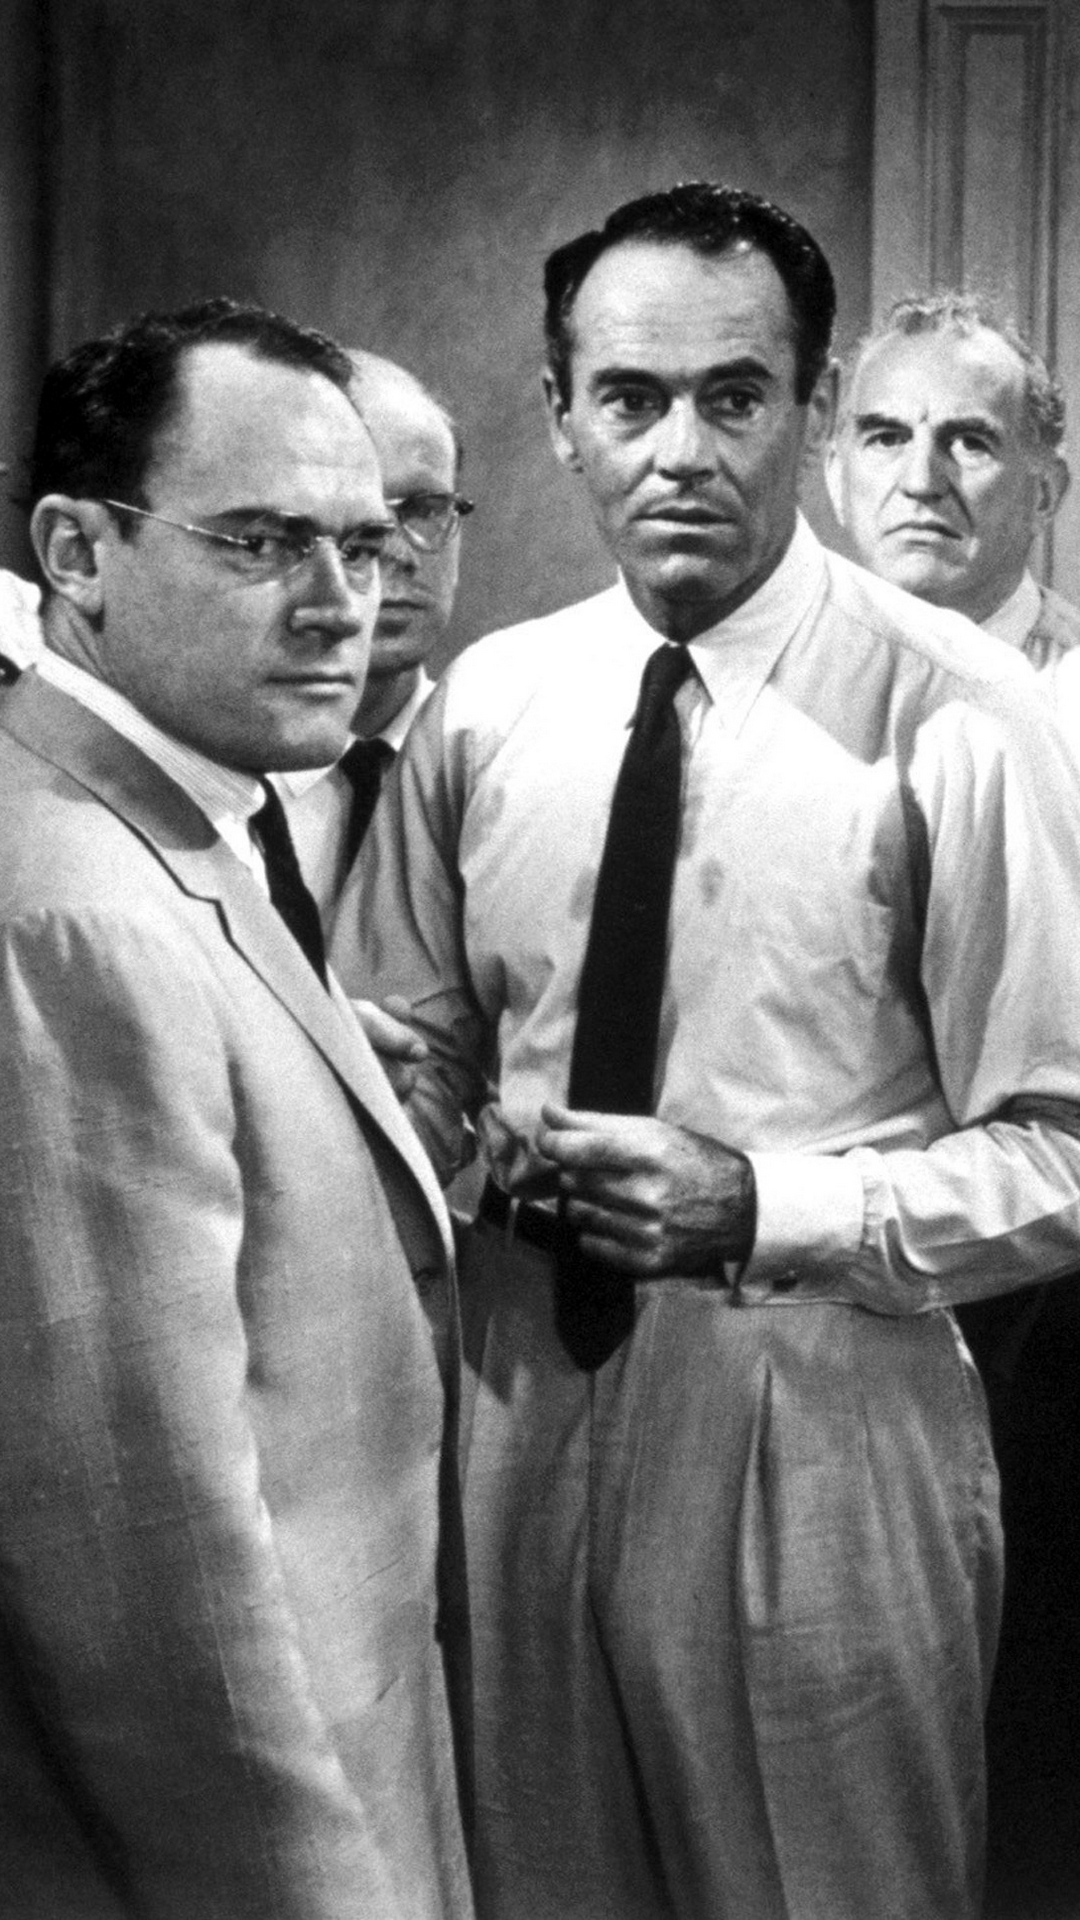 Download wallpaper 1080x1920 12 angry men men actors black 1080x1920